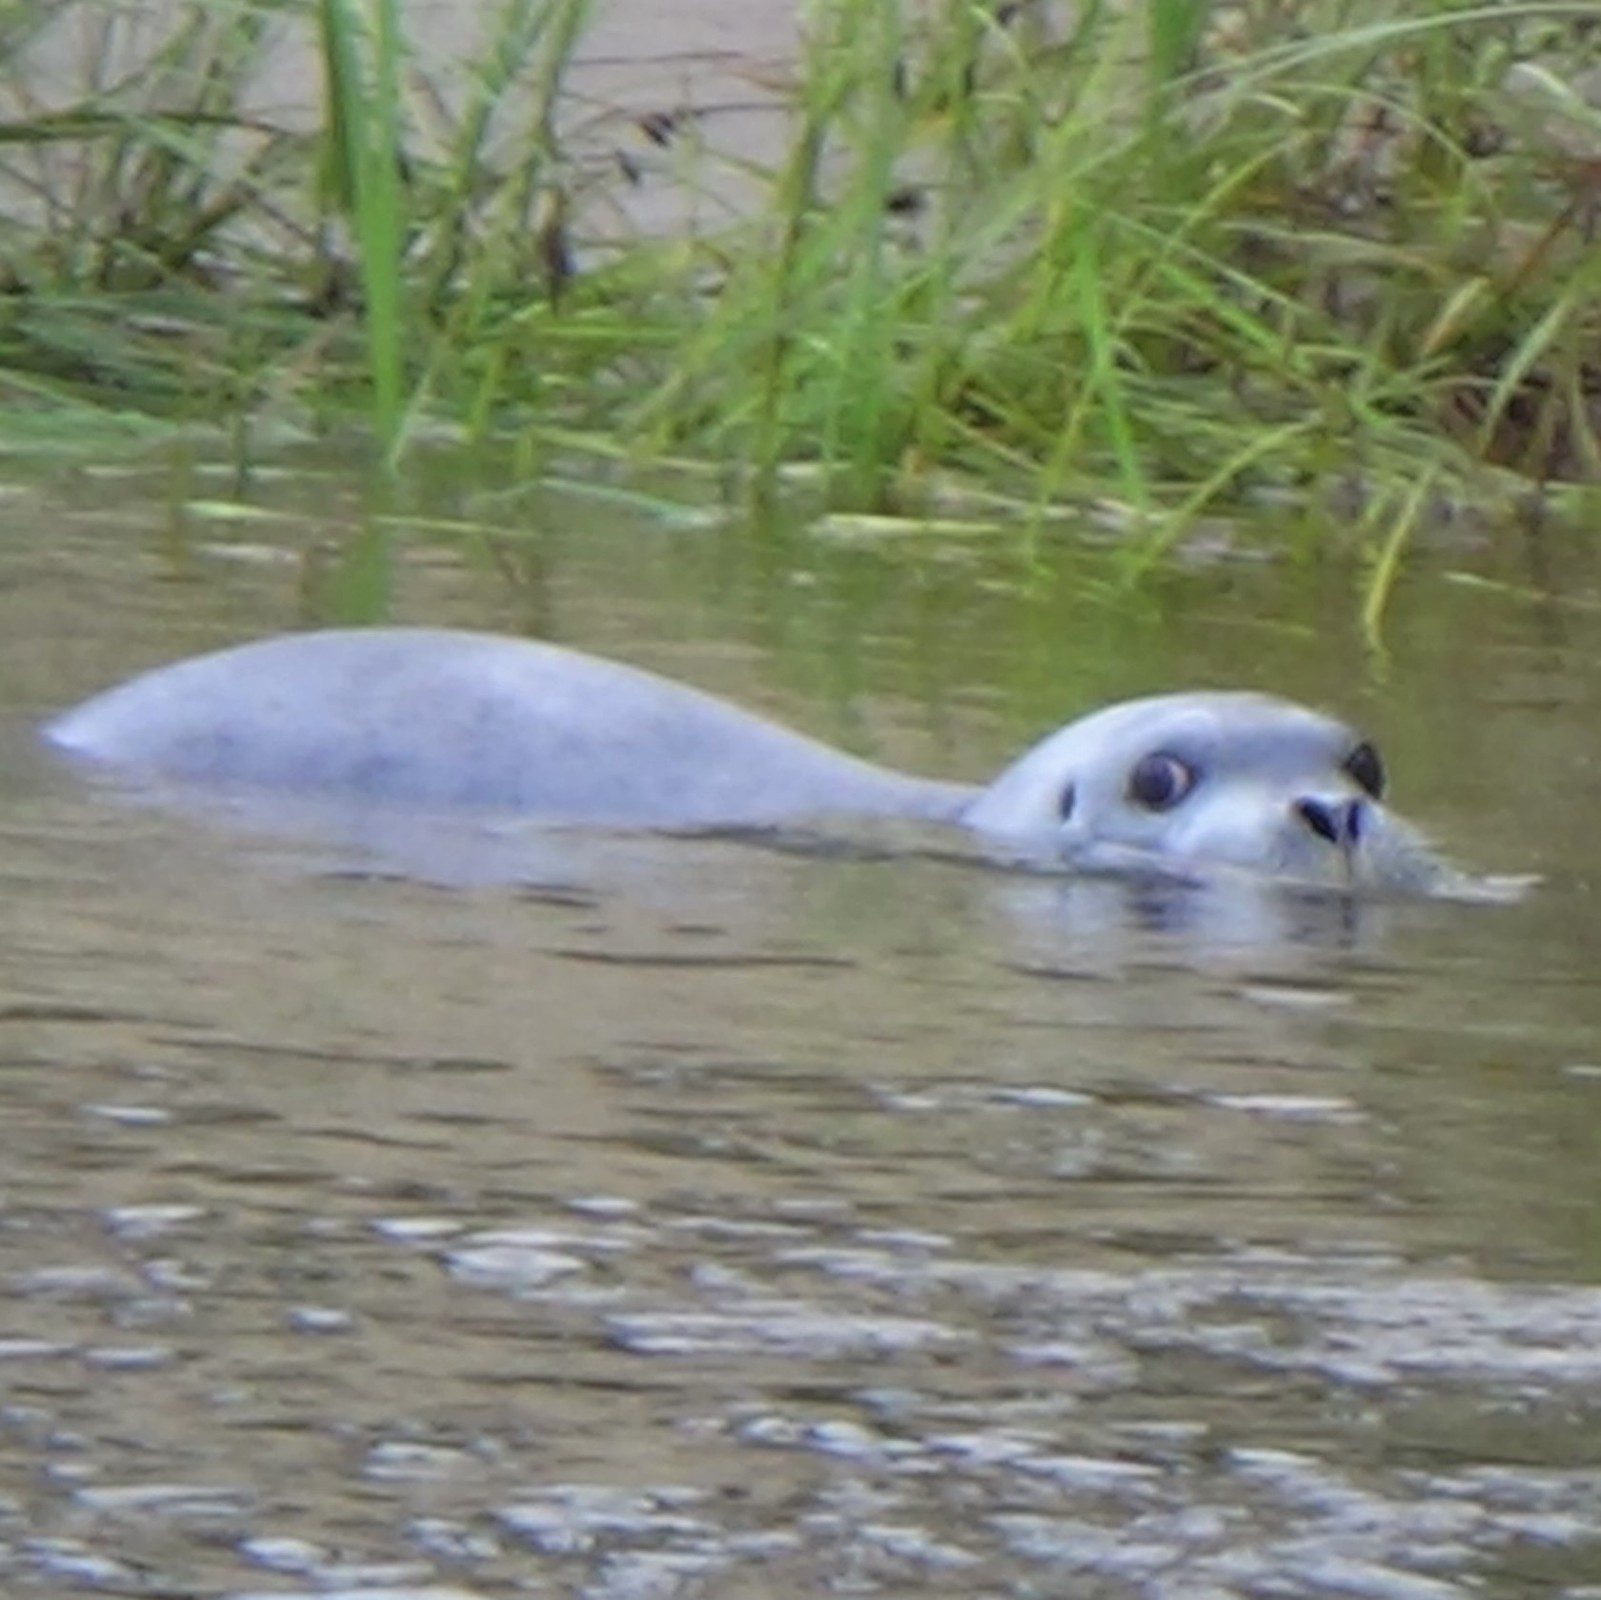 Seal in river